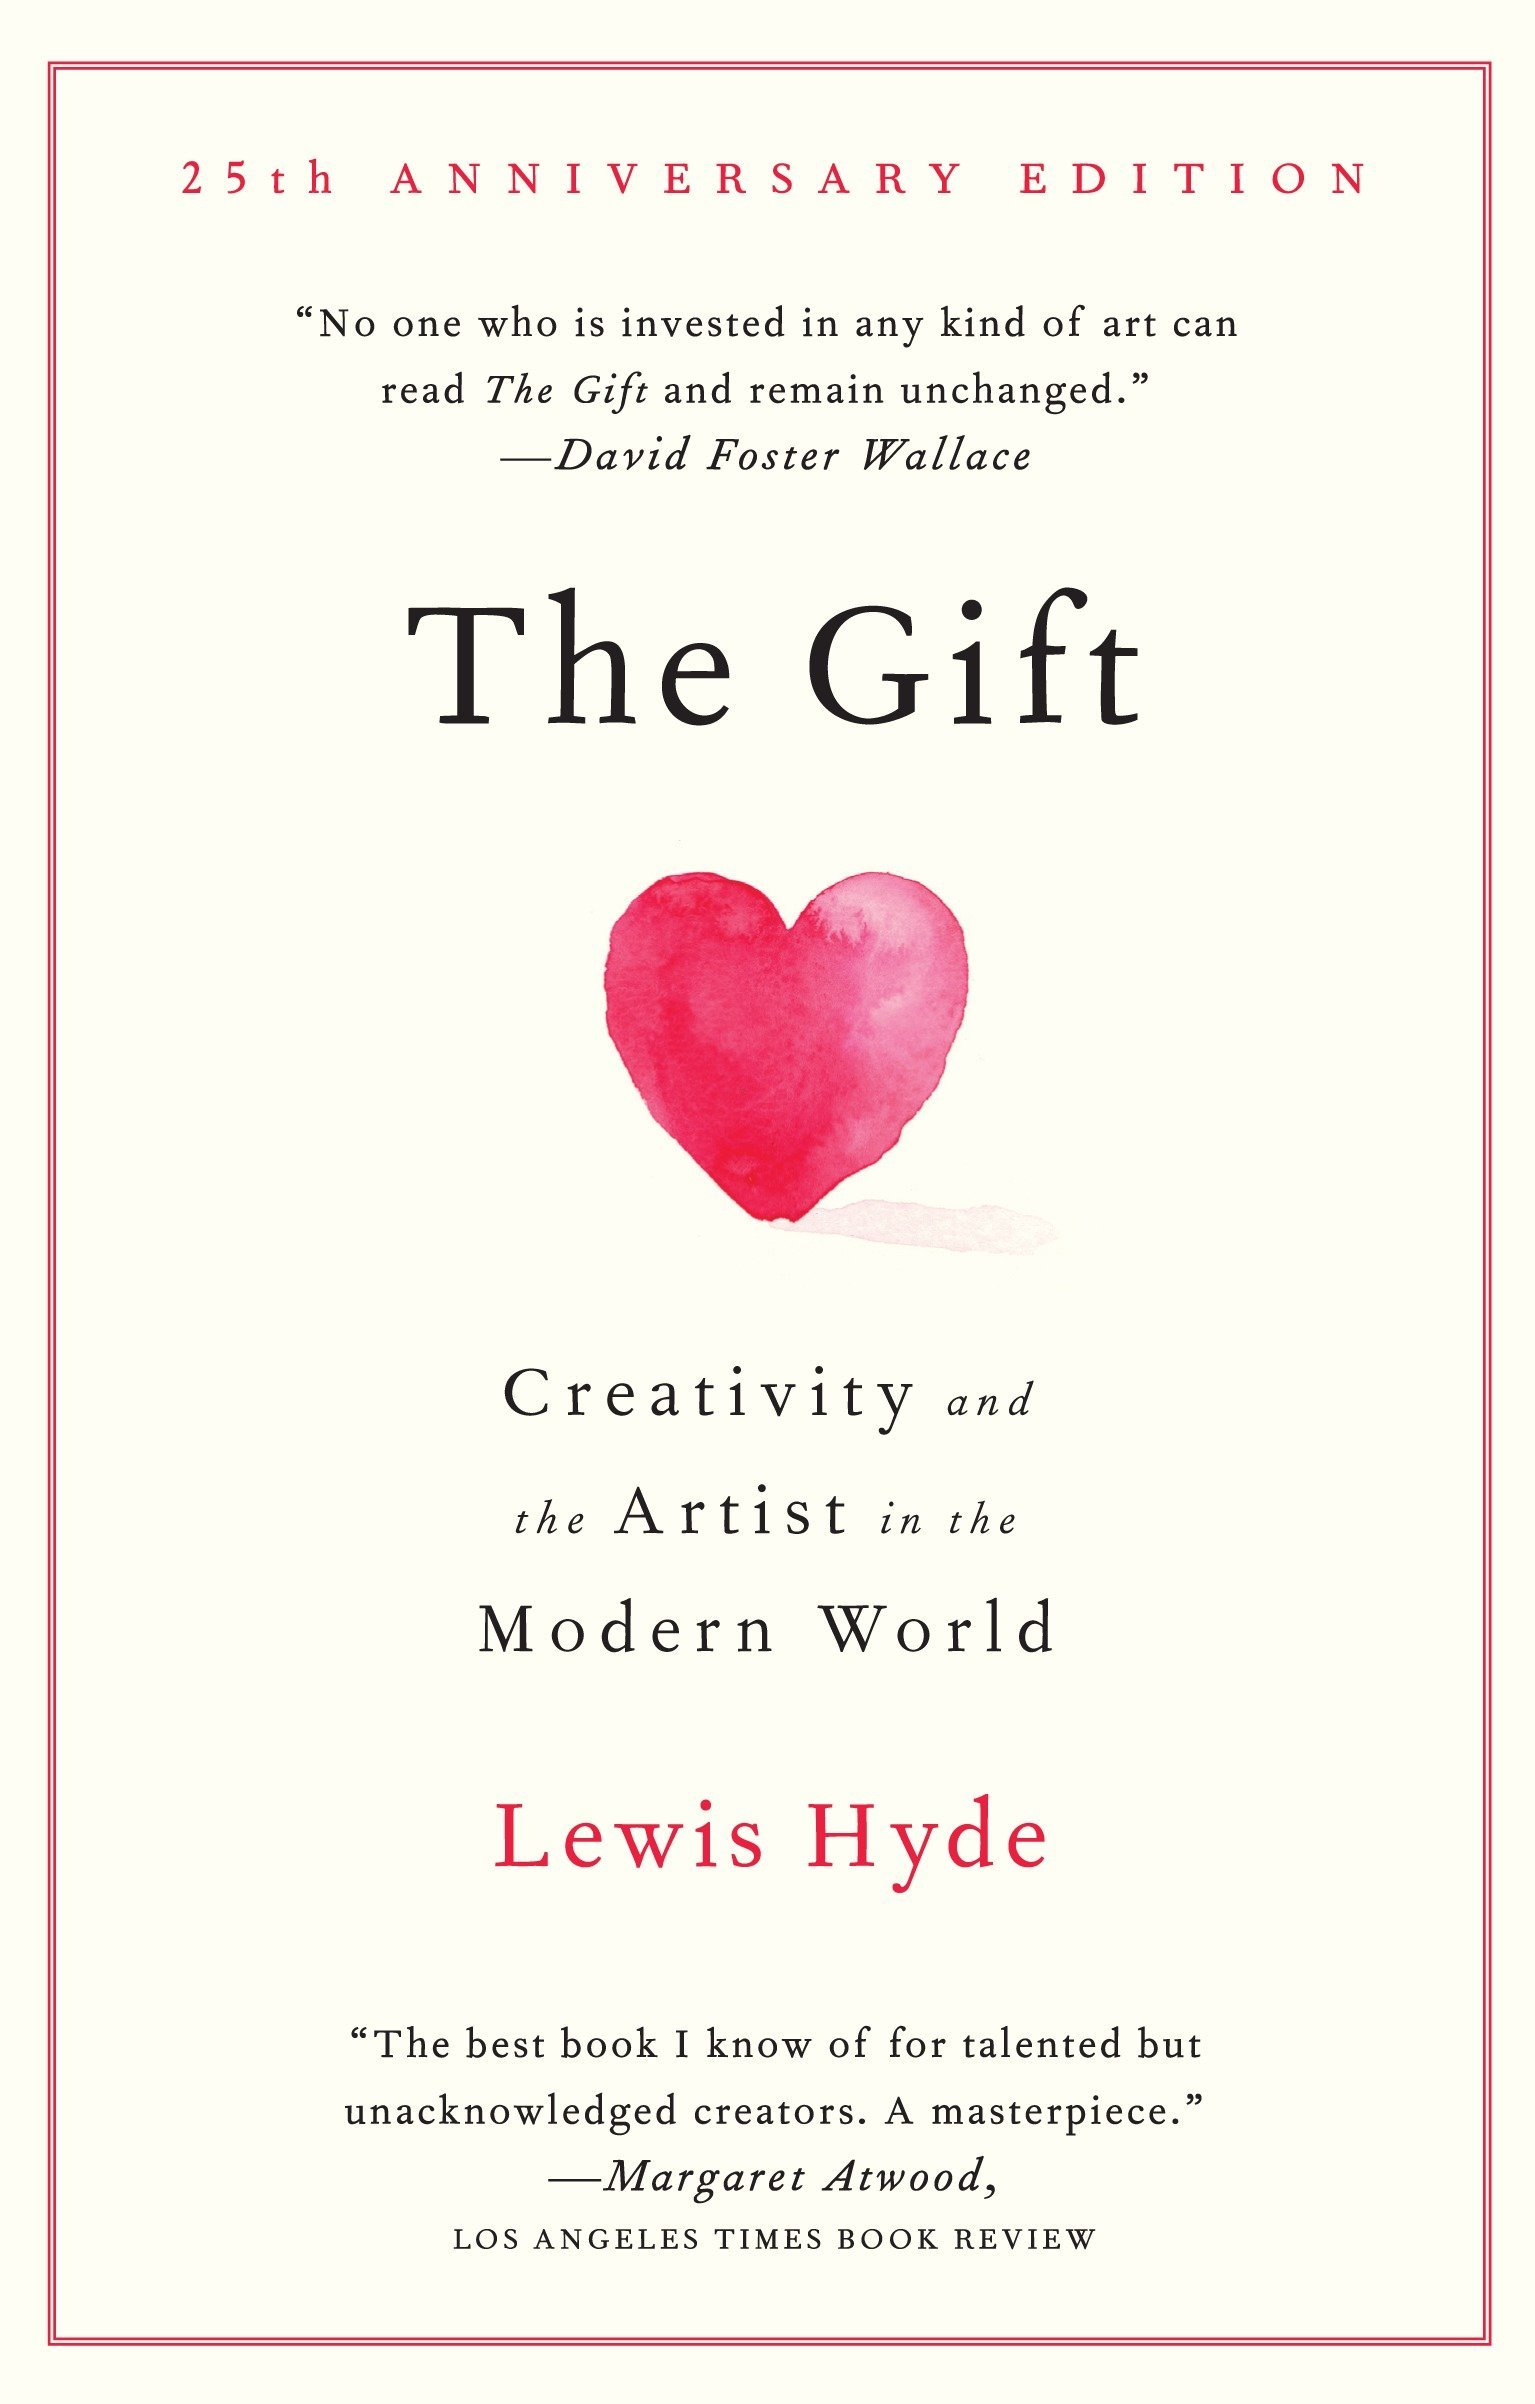 The Gift (Lewis Hyde)